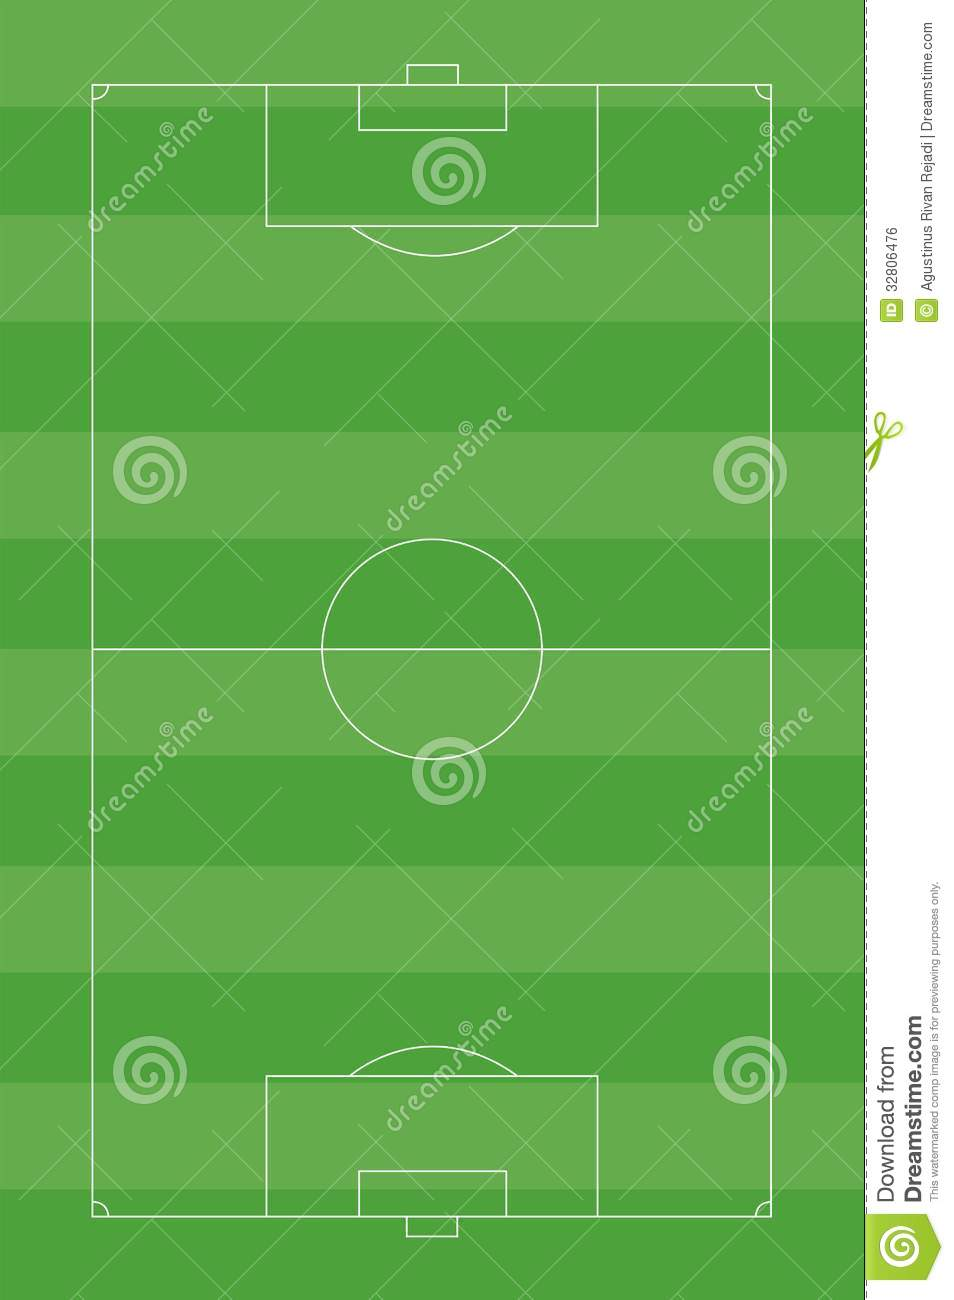 Soccer Field Royalty Free Stock Image Image 32806476